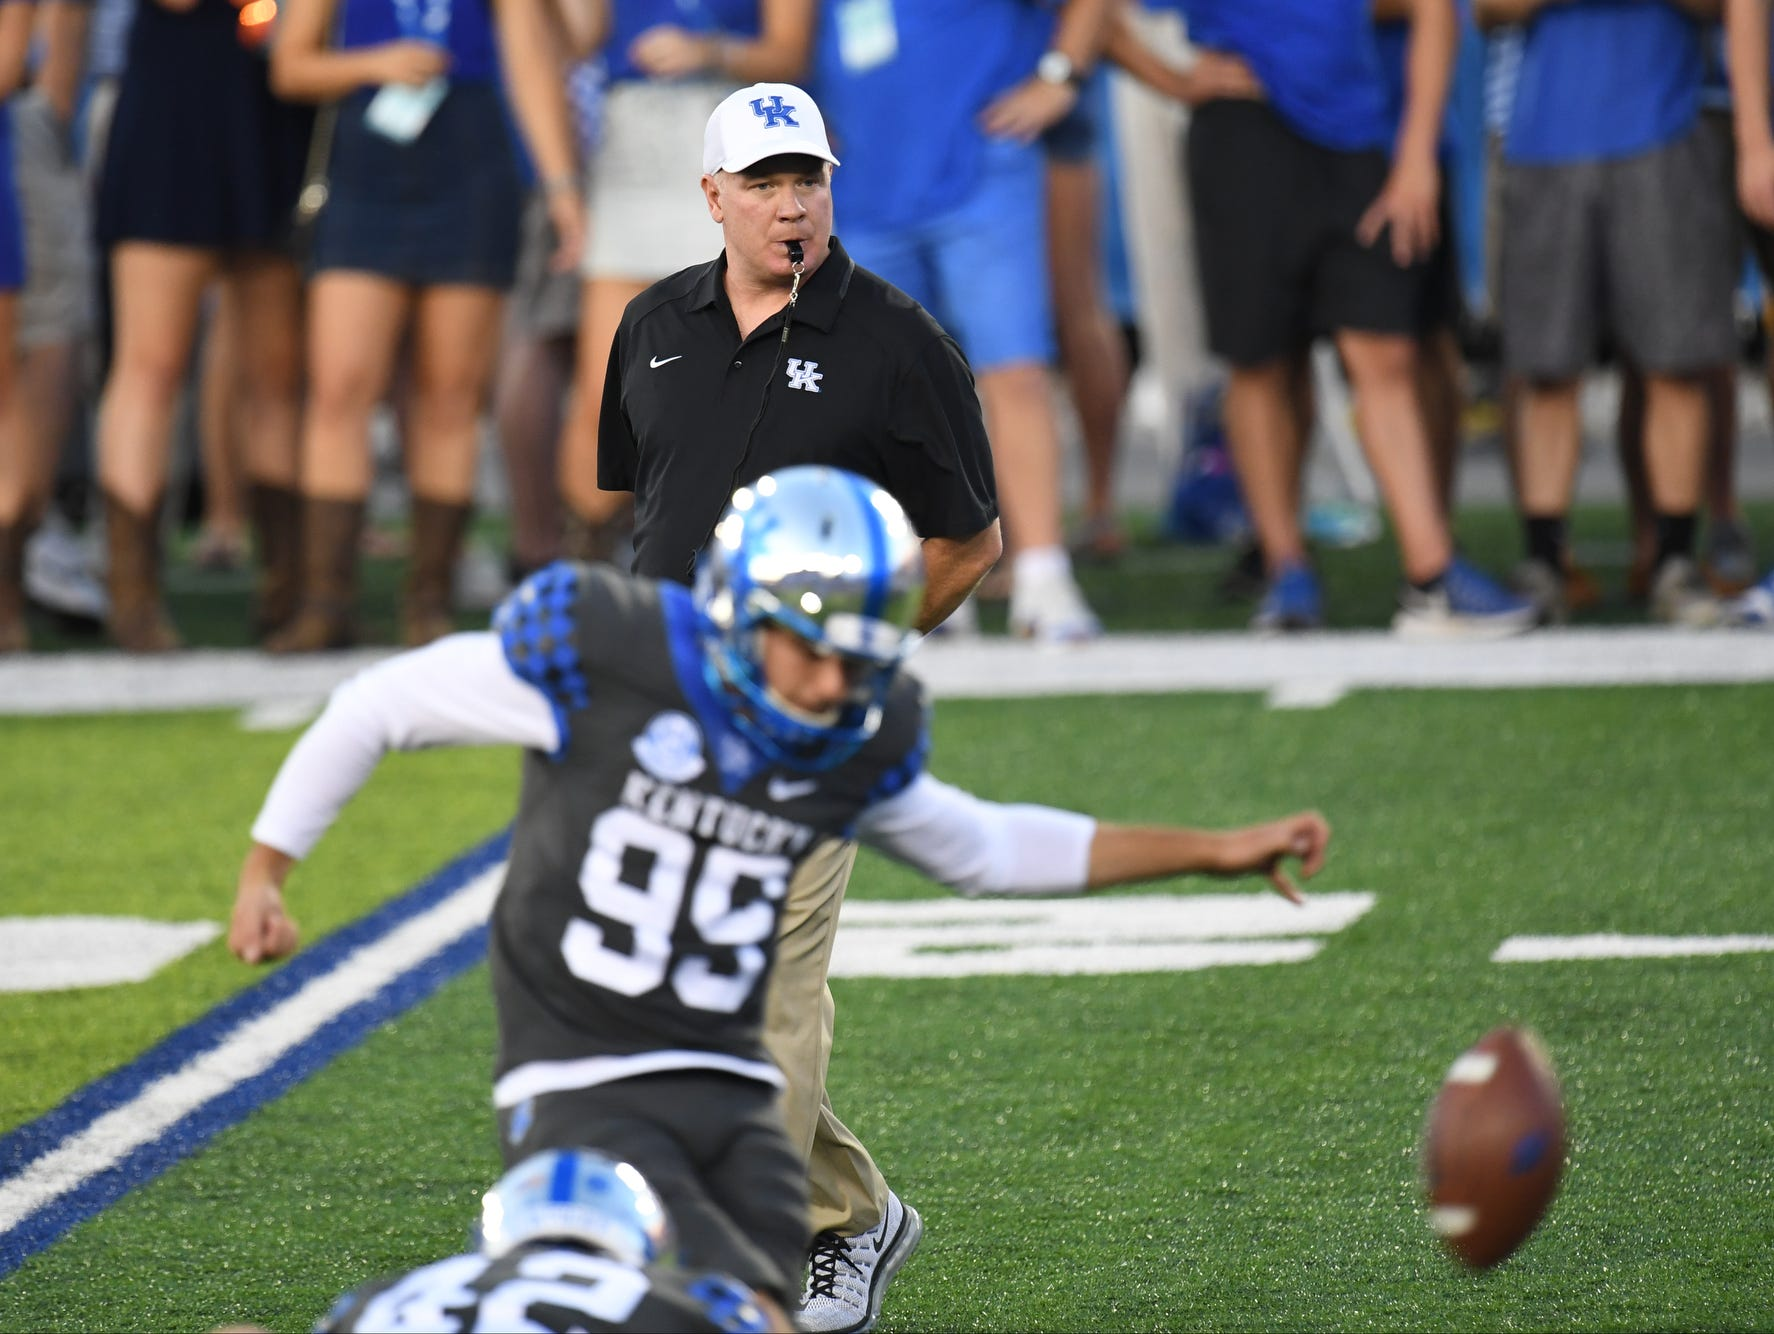 UK head coach Mark Stoops watches kicker Austin McGinnis warm up before the University of Kentucky football game against University of Florida in Lexington, KY on Saturday, September 23, 2017.